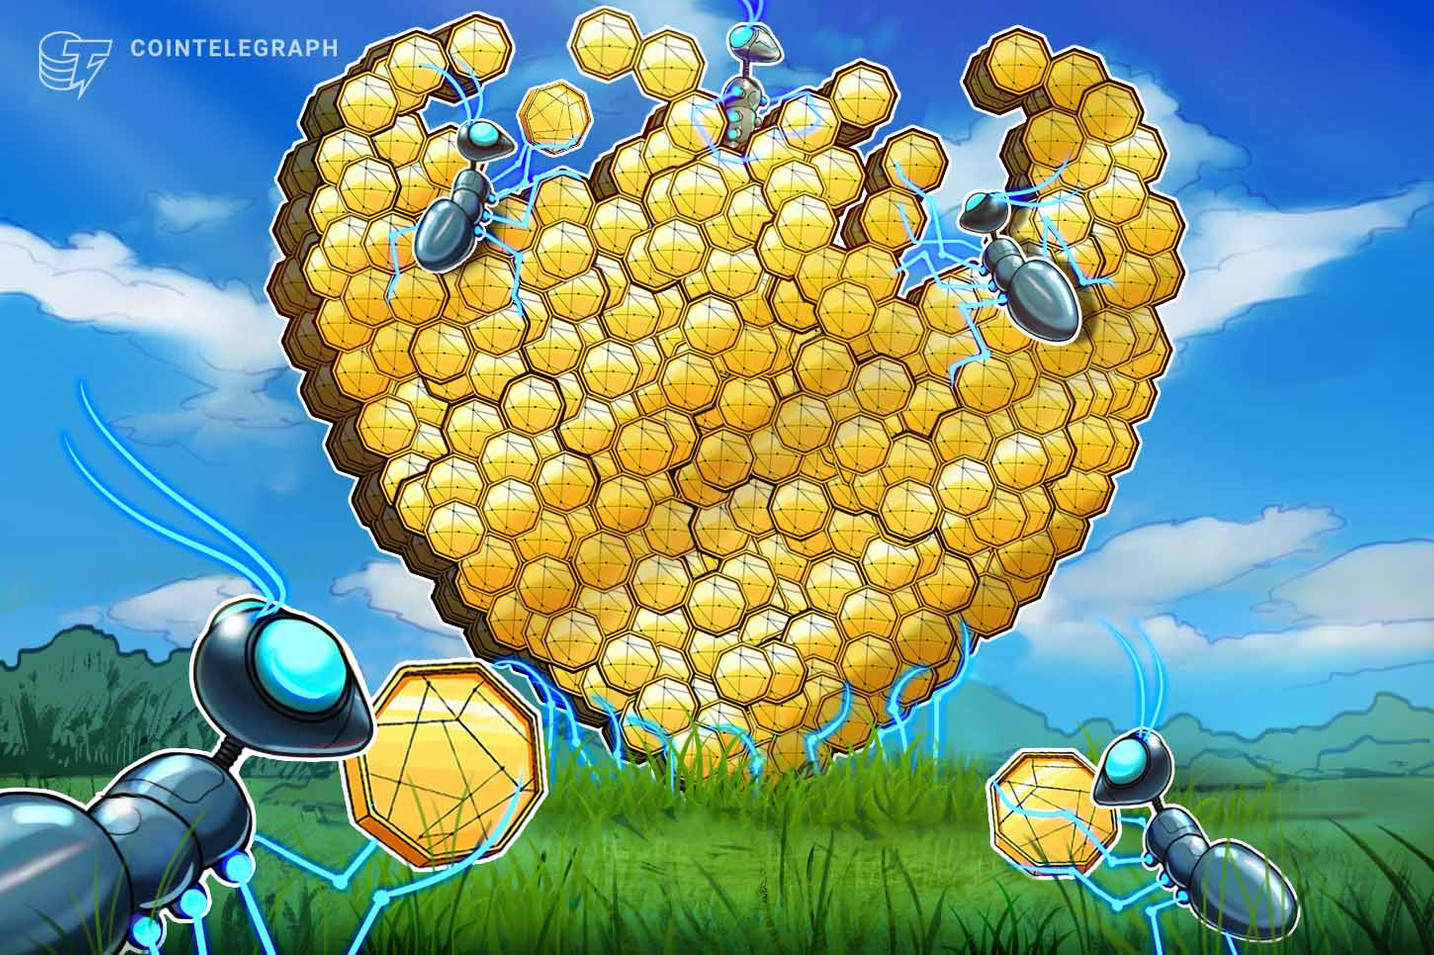 The Future of Philanthropy Lies in Blockchain Technology